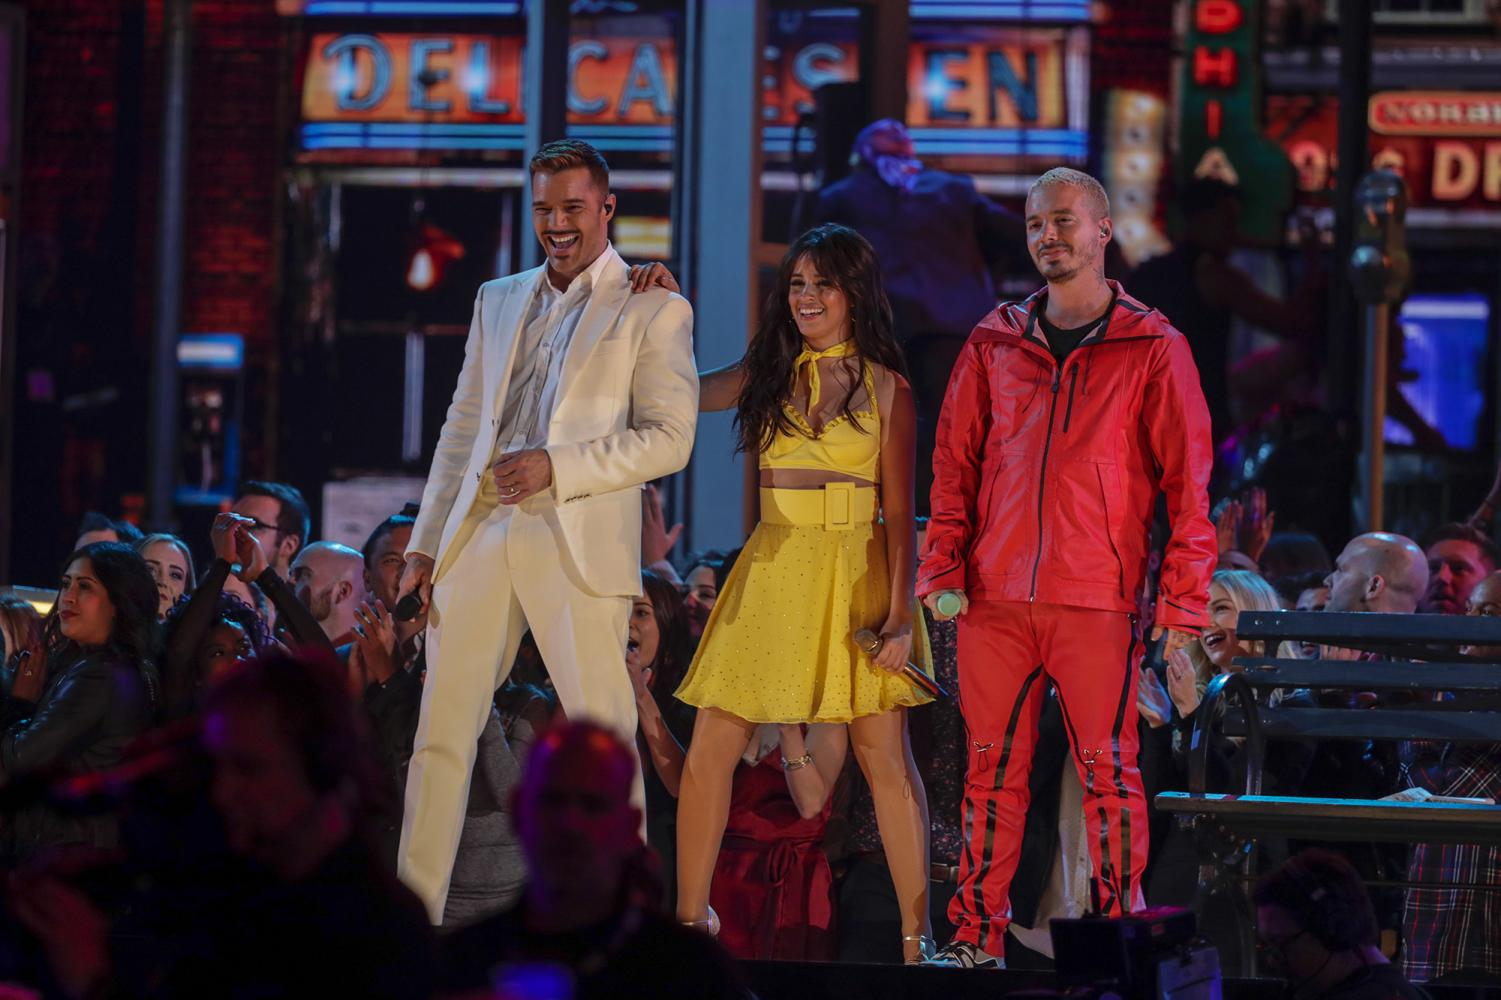 Ricky Martin, Camila Cabello, and J Balvin perform during the 61st Grammy Awards at Staples Center in Los Angeles on Sunday, Feb. 10, 2019. (Robert Gauthier/Los Angeles Times/TNS)